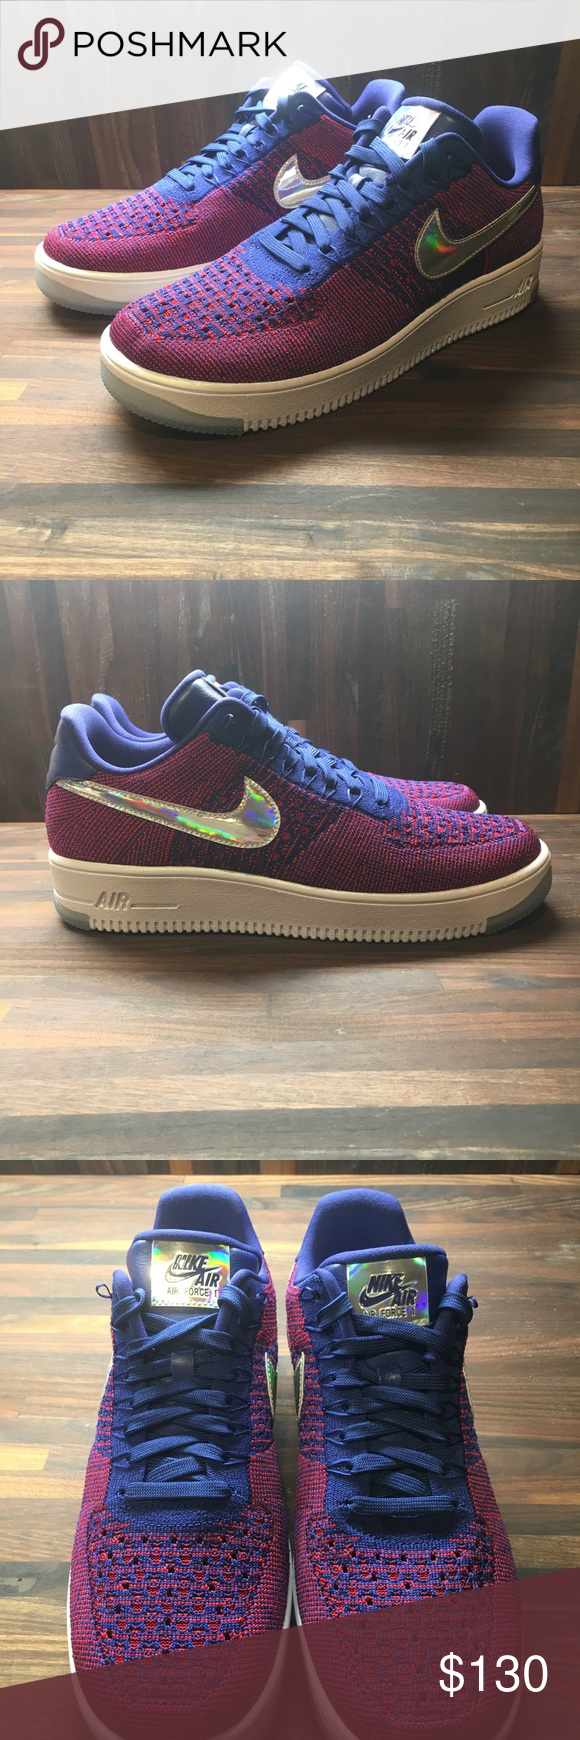 New Nike Air Force 1 Ultra Flyknit Low USA 10.5 Brand New Air Force 1 Ultra a39d3f633